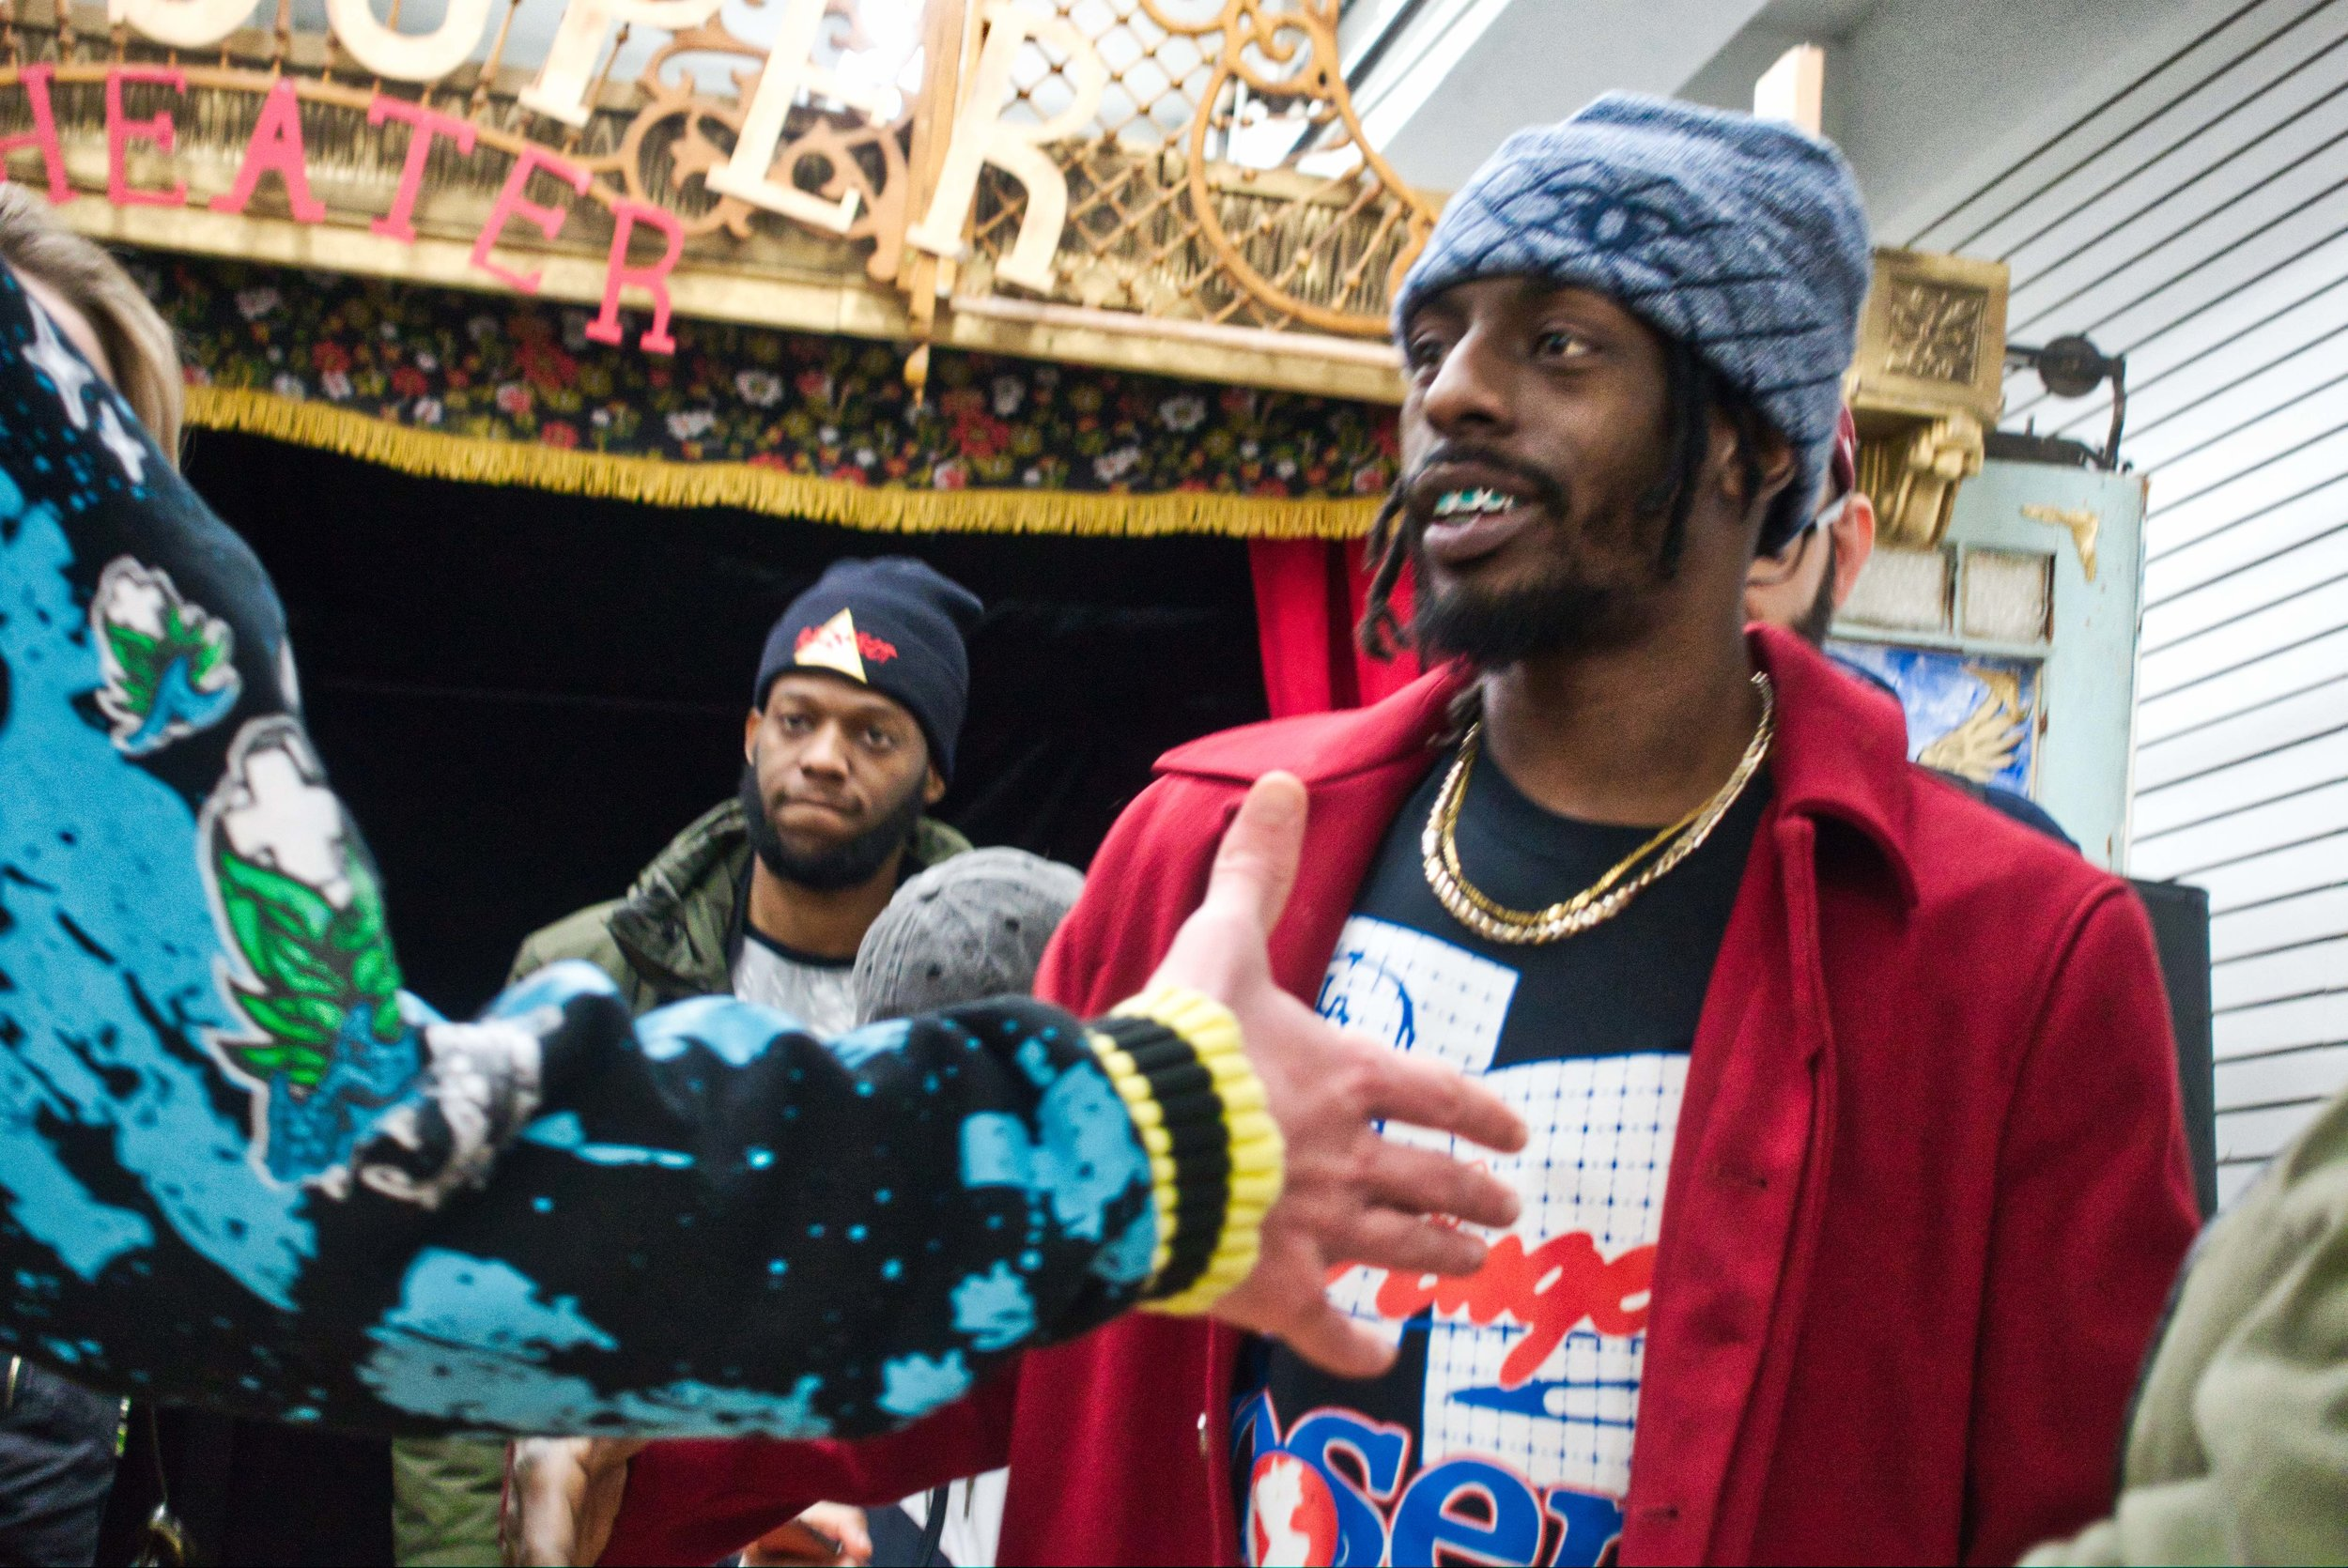 I covered The Flatbush Zombies at a NYC downtown pop up.